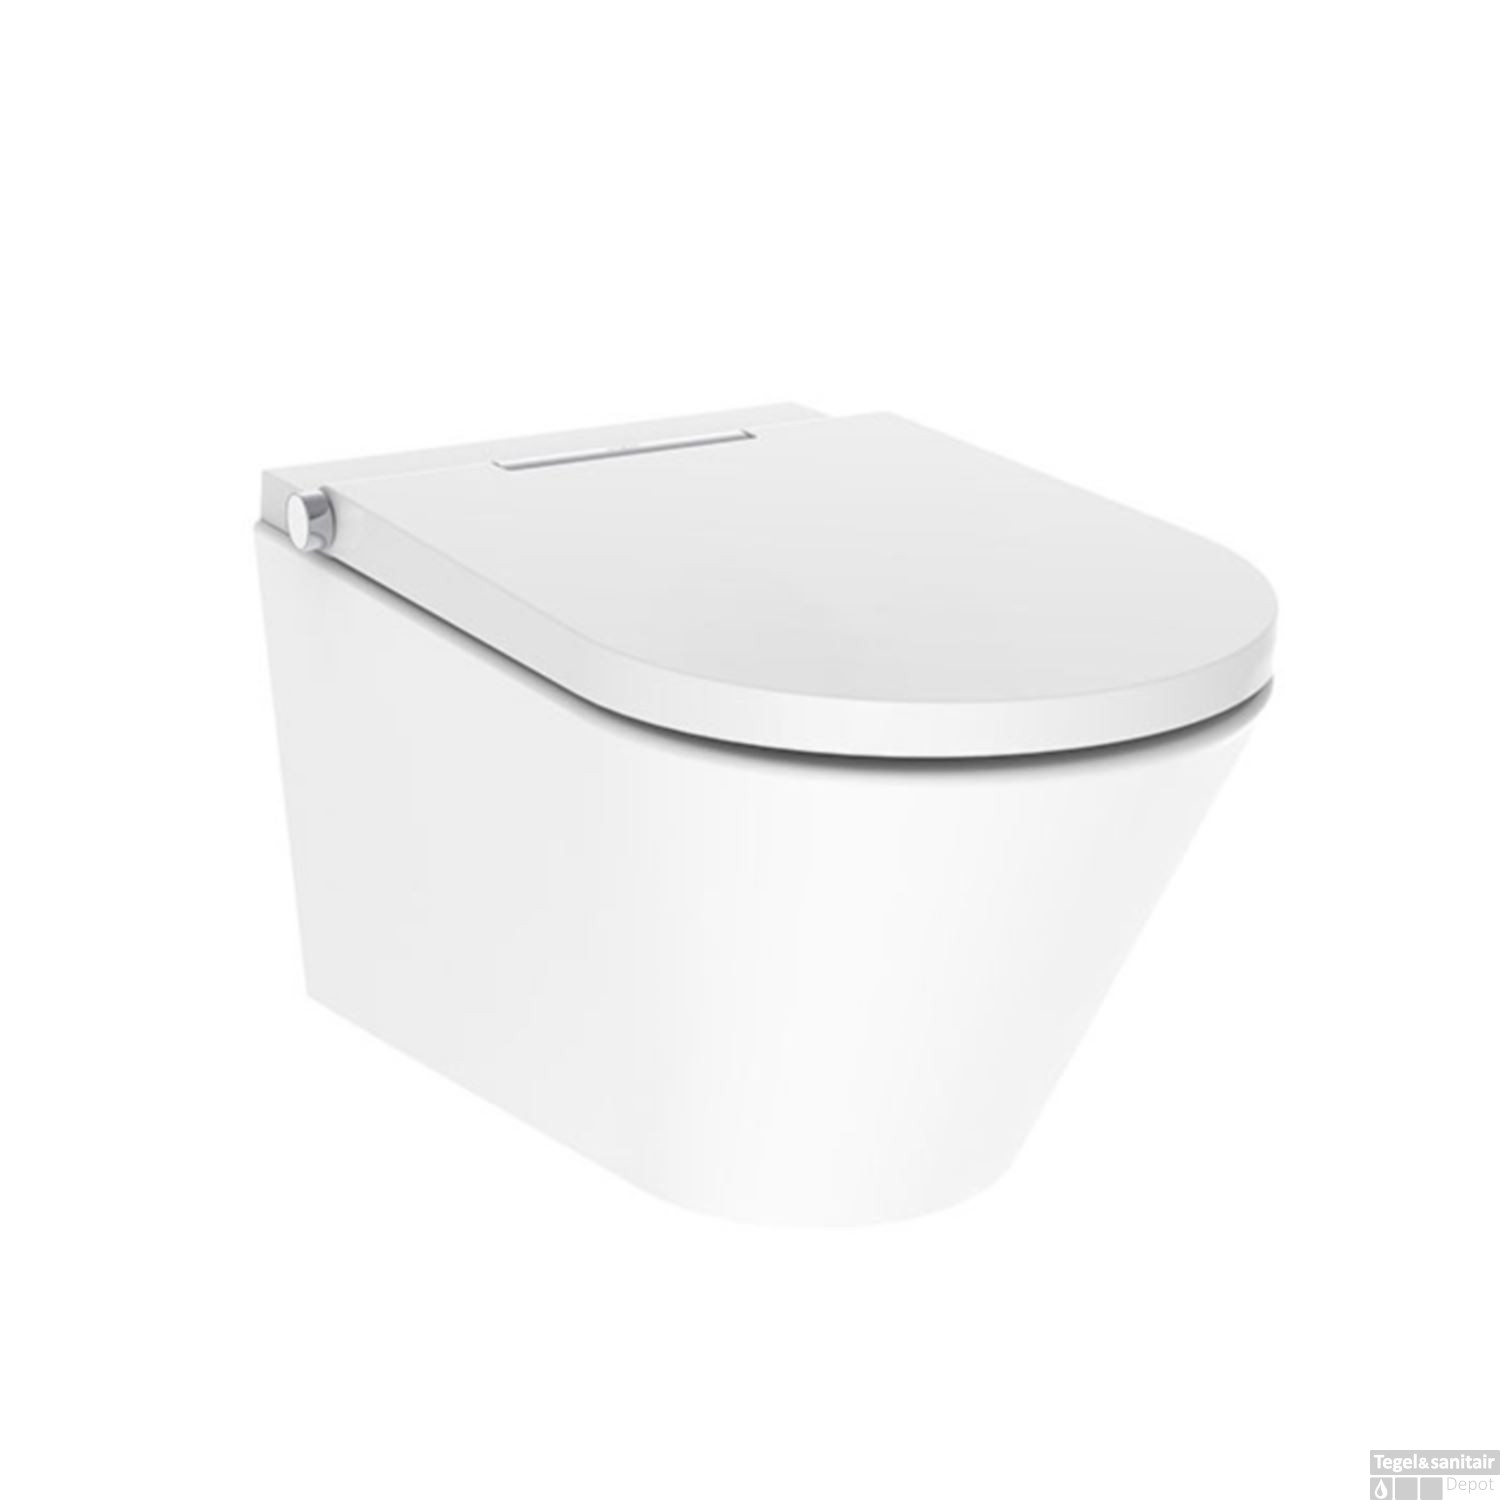 Favoriete Douche WC Axent Rimless Wit (inclusief zitting) TI71